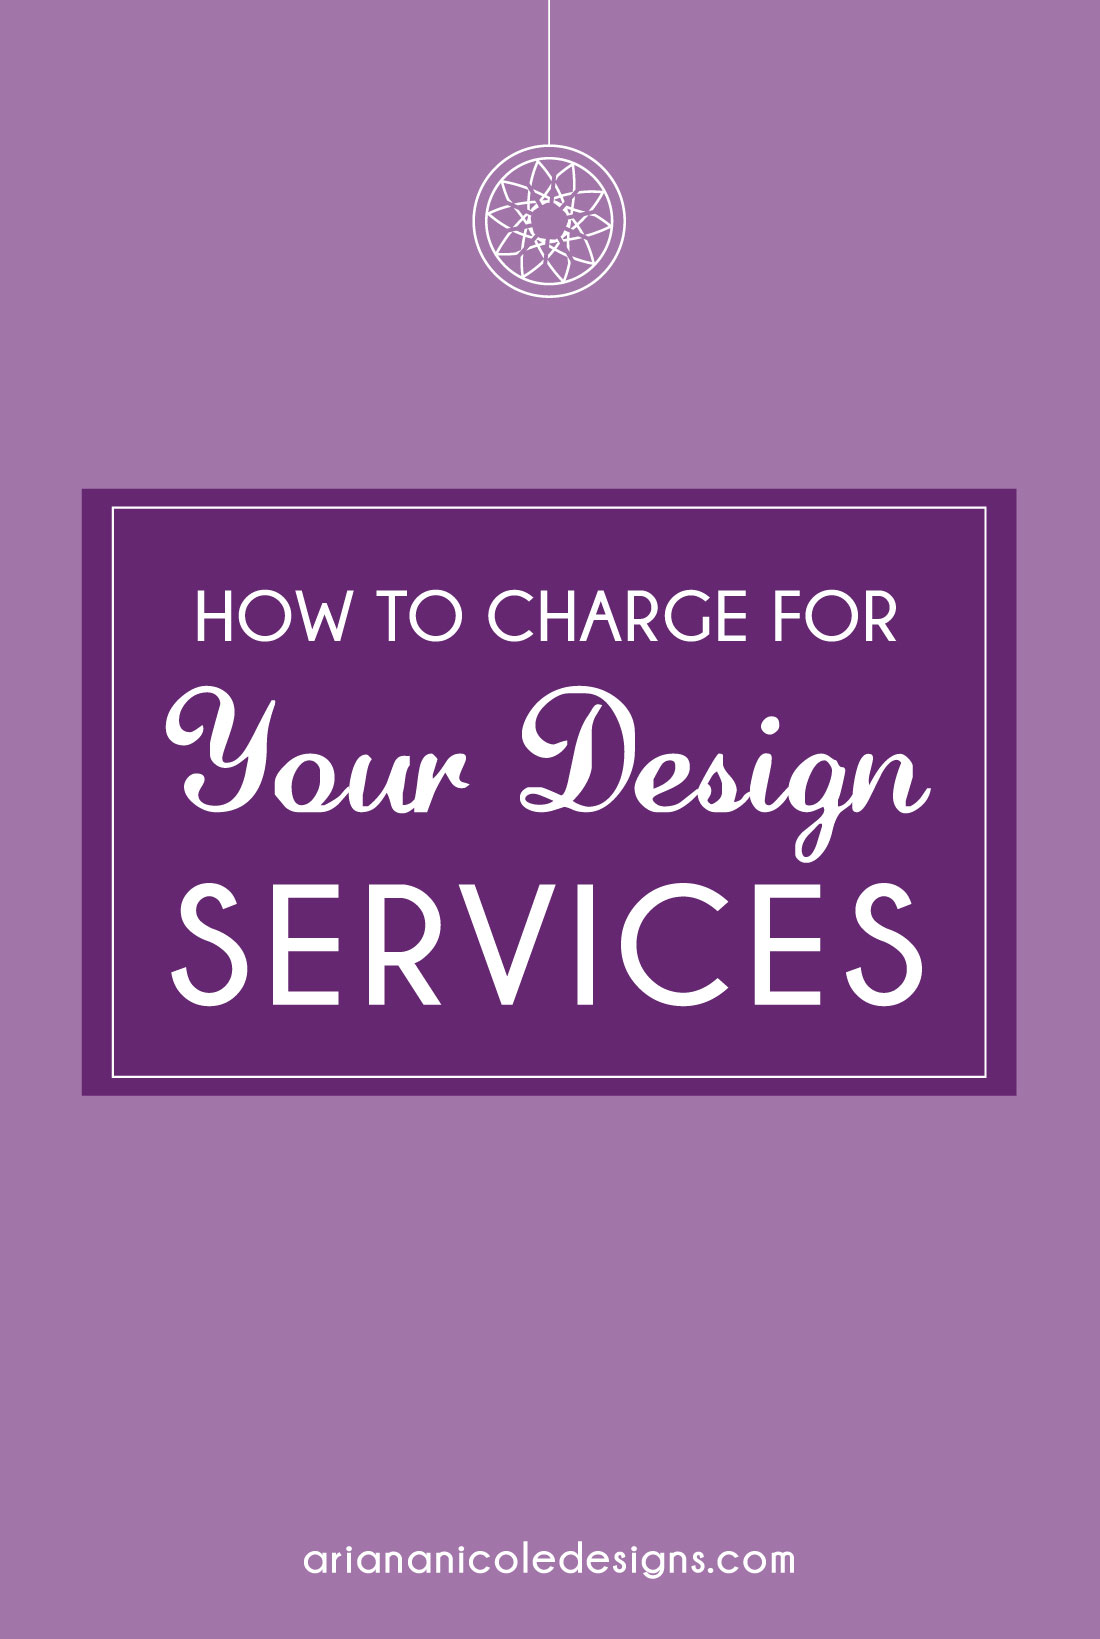 How_To_Charge_For_Your_Design_Services-1100